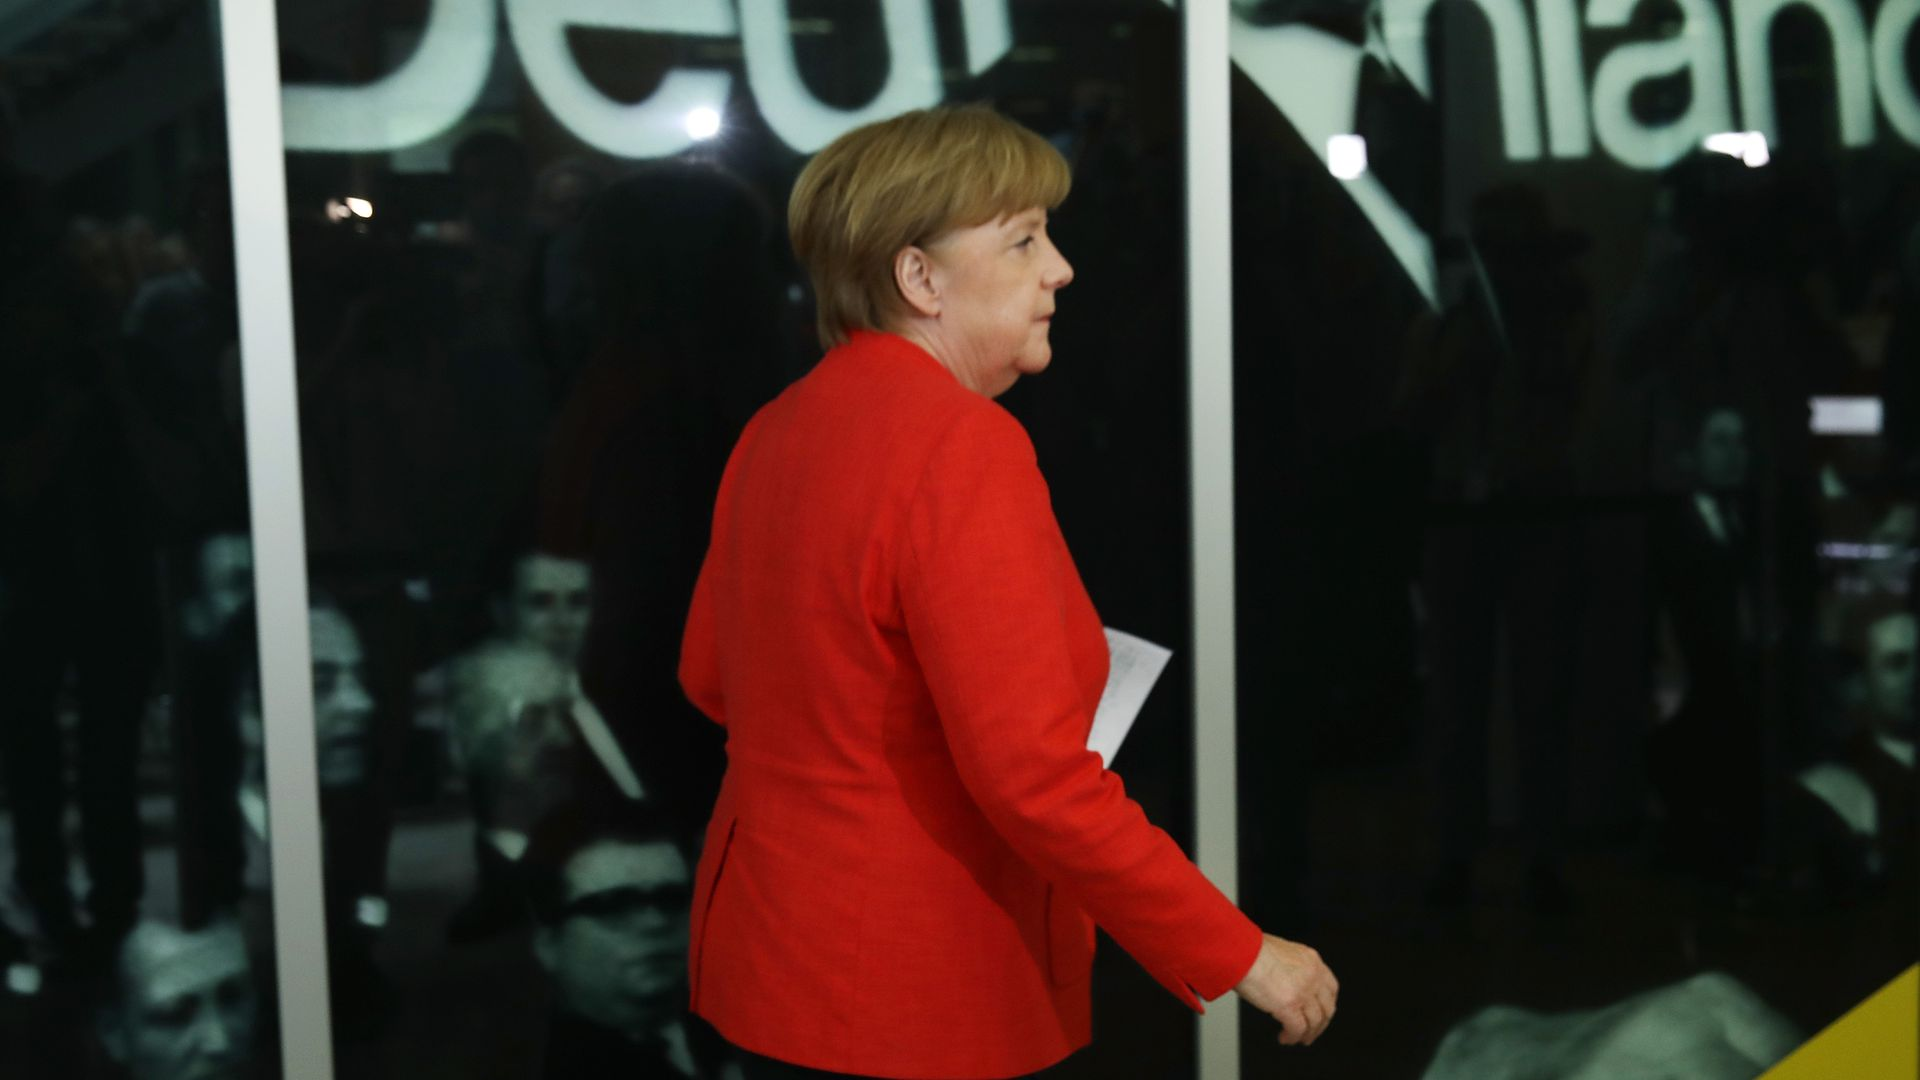 Angela Merkel in a red suit